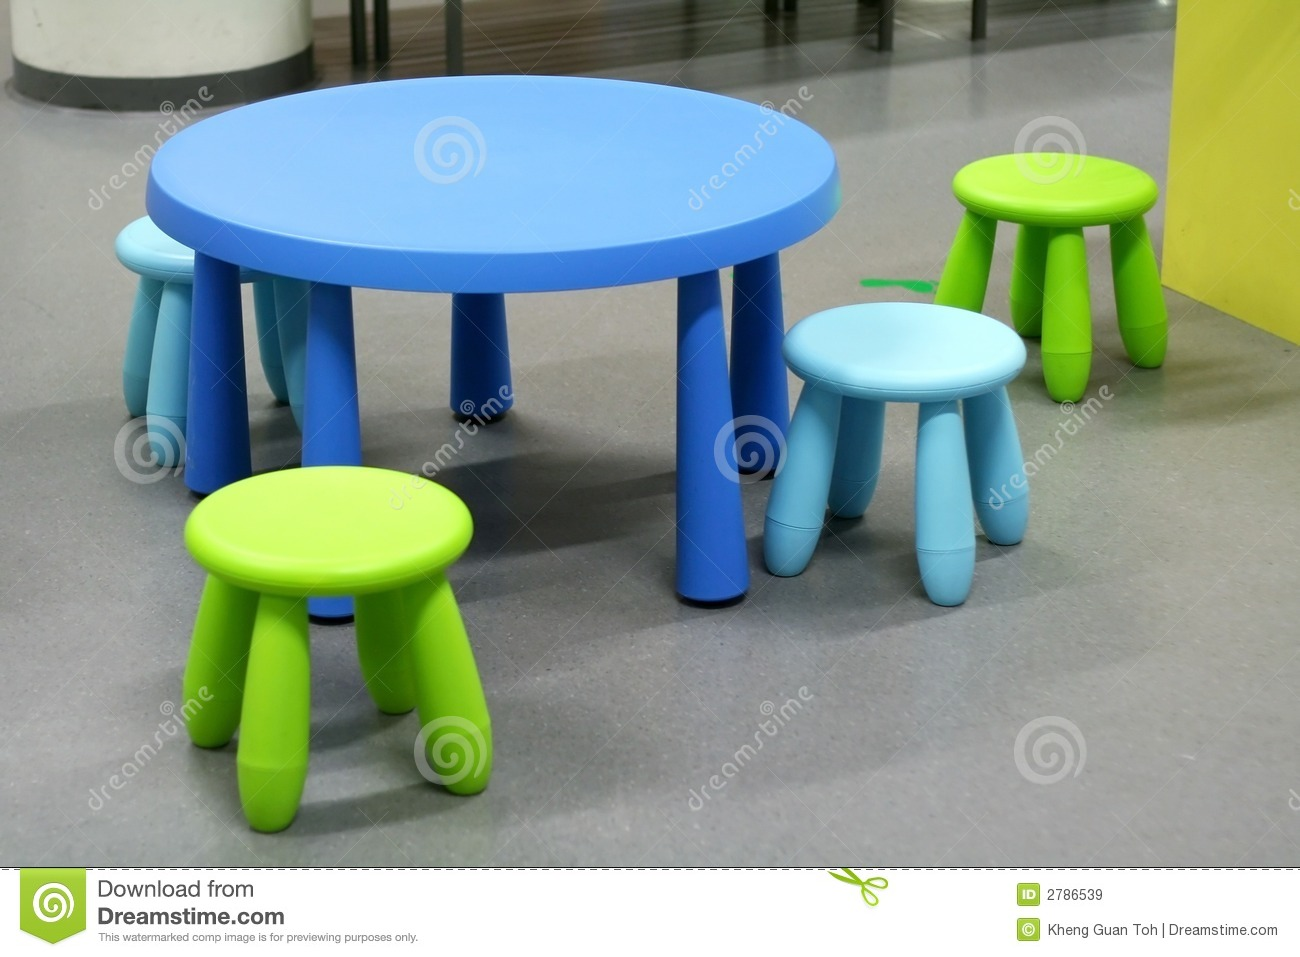 Plastic furniture stock image image of rounded children 2786539 Plastic for furniture